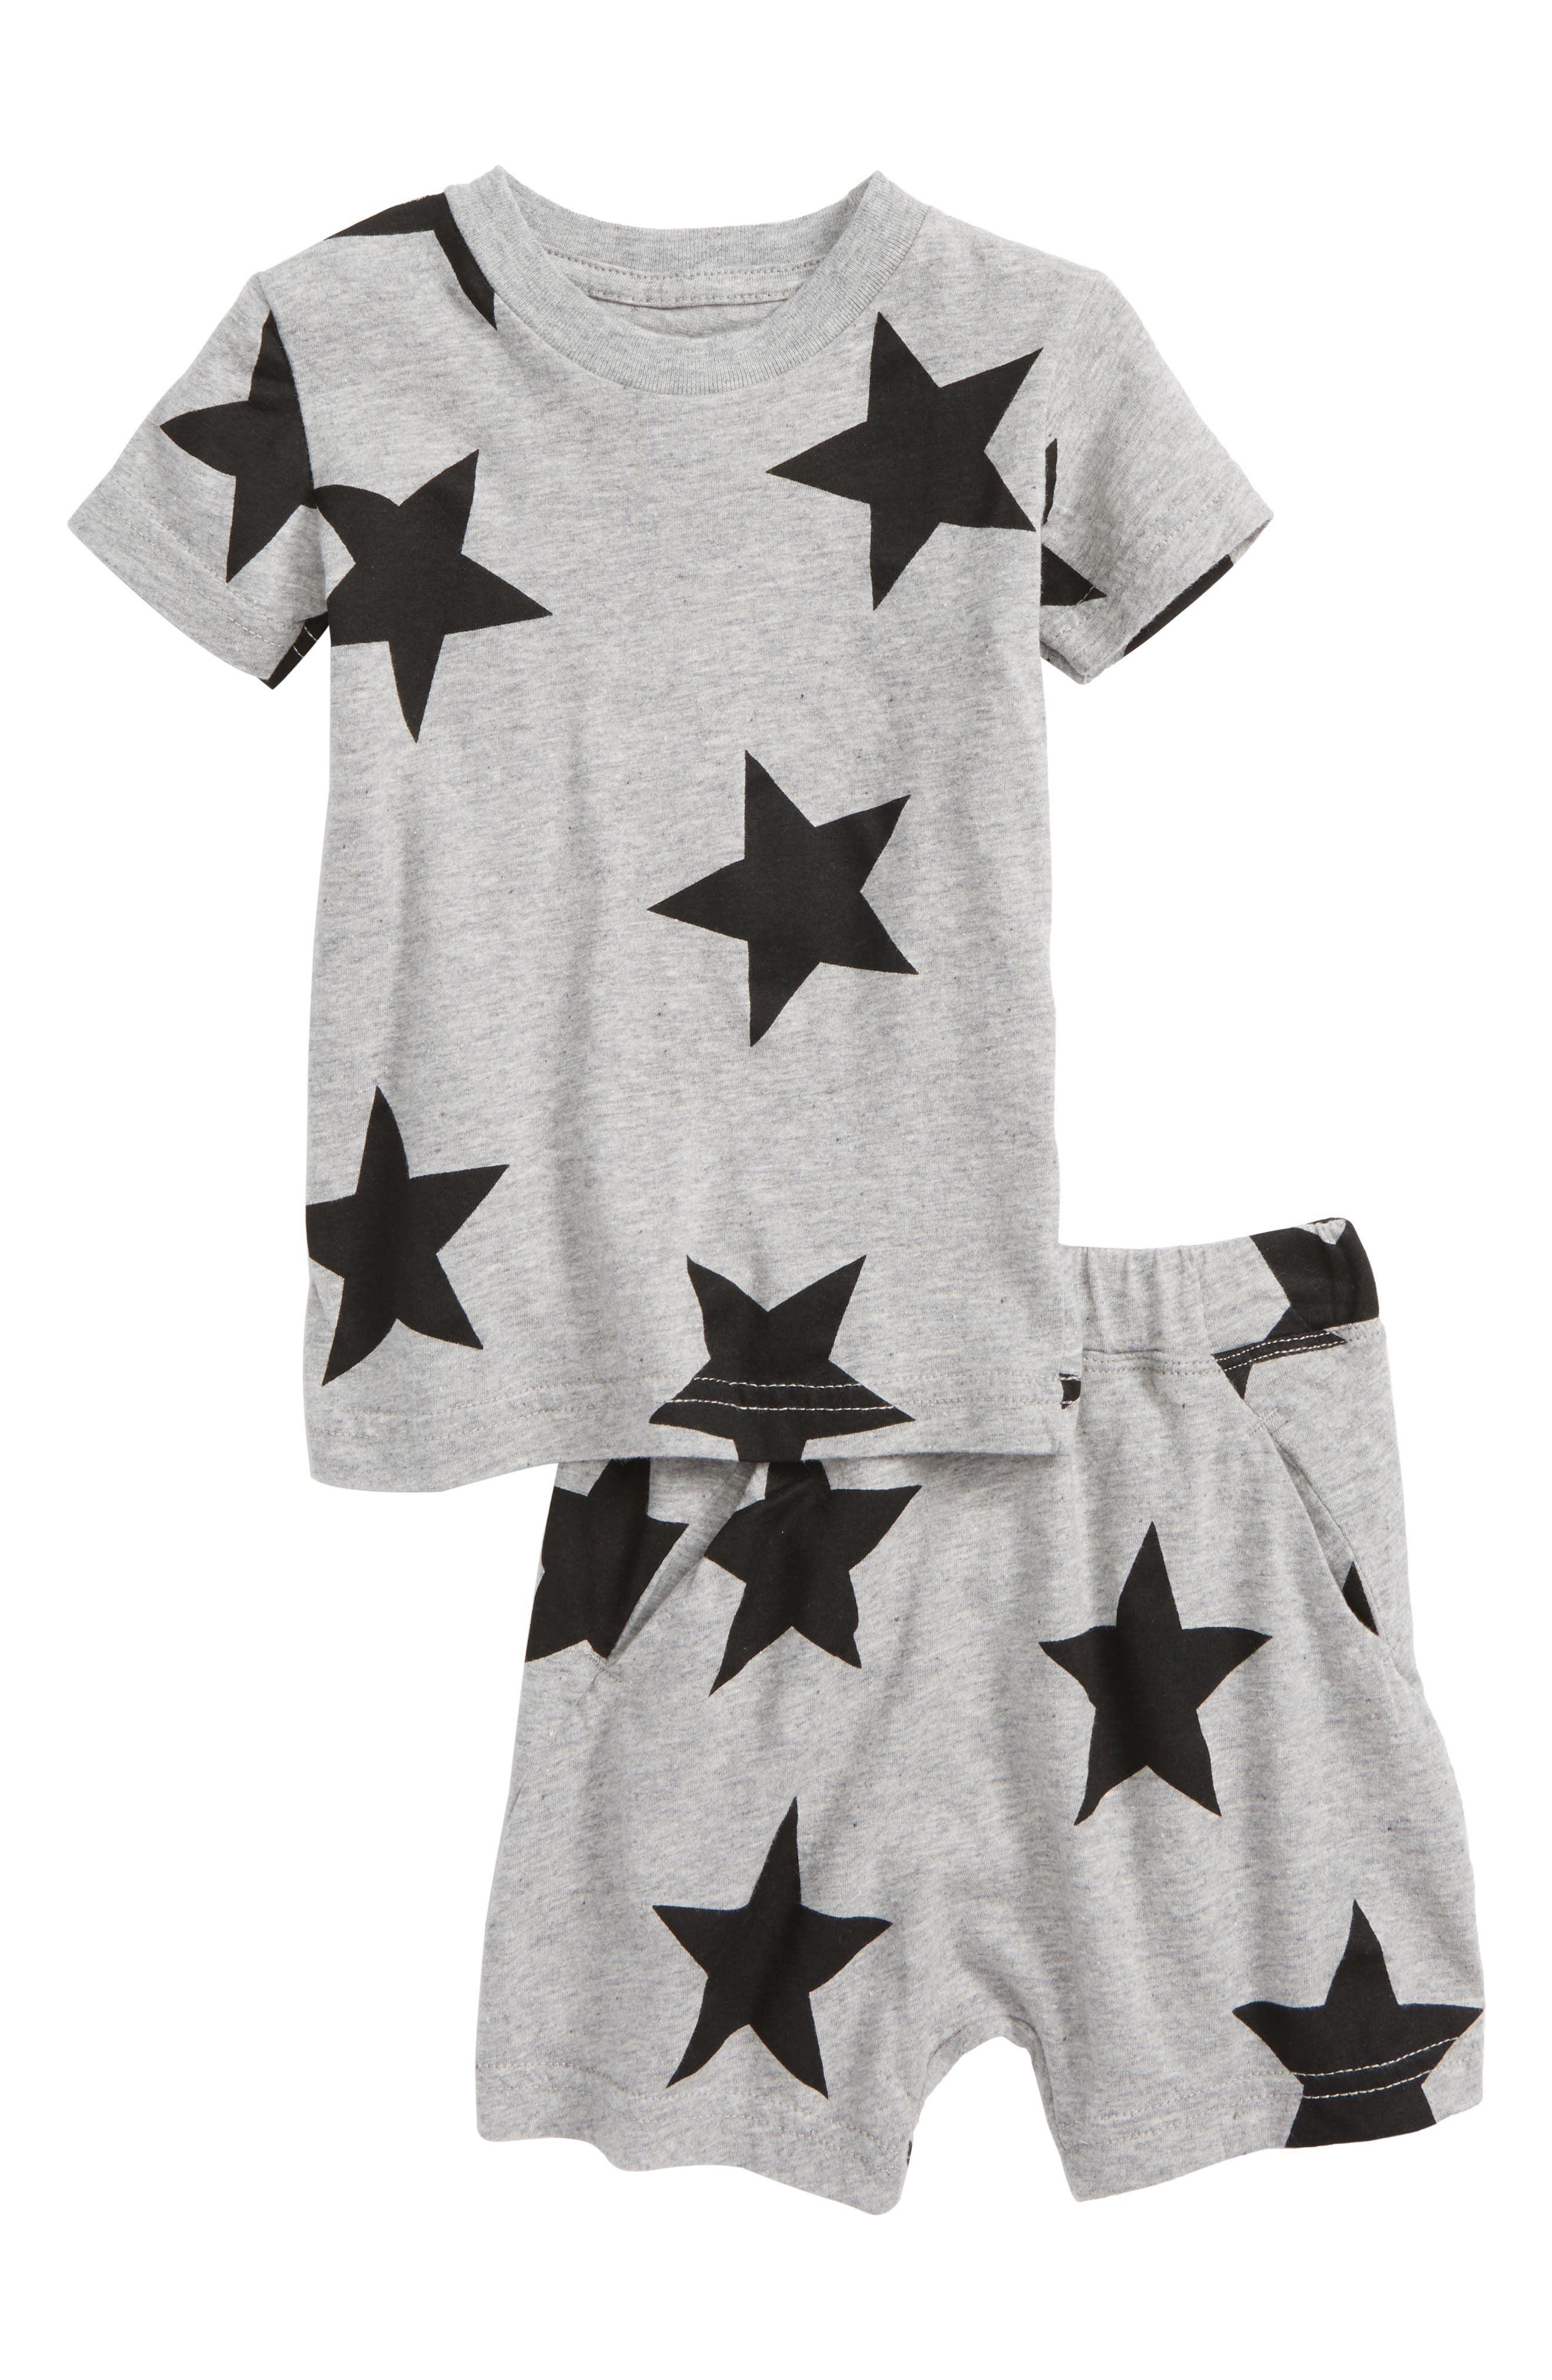 Star Print T-Shirt & Shorts Set,                             Main thumbnail 1, color,                             050